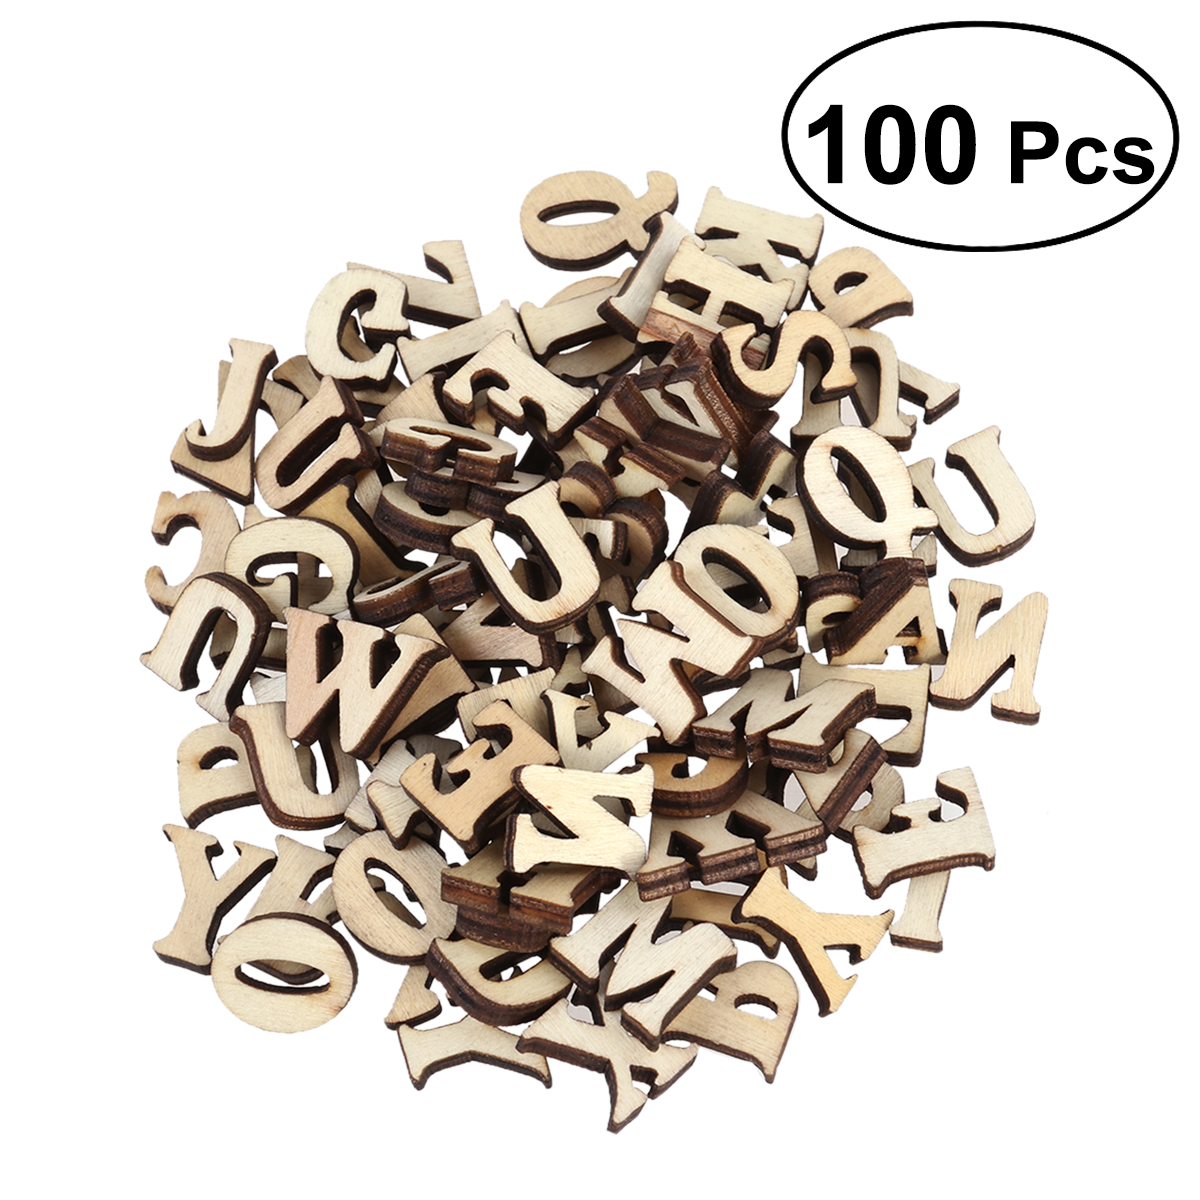 50/100pcs Wood Slices Unfinished Wooden Capital Letters Alphabet Wood Cutout Discs For Patchwork Scrapbooking Arts Crafts